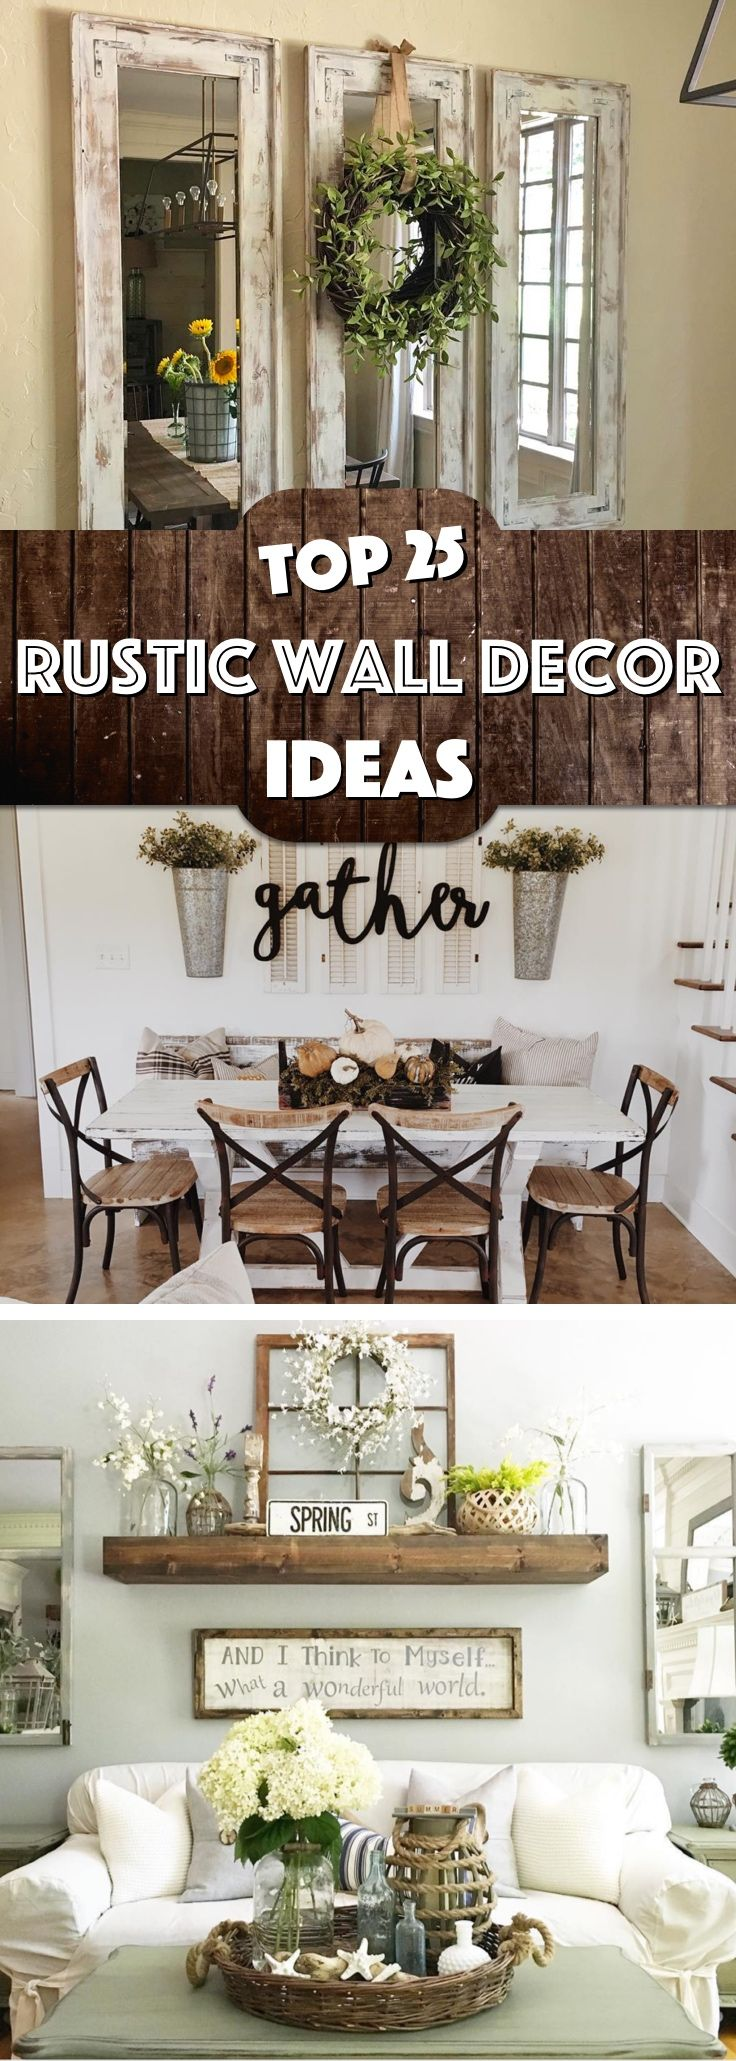 images of living room wall decor murals for 25 must try rustic ideas featuring the most amazing intended imperfections